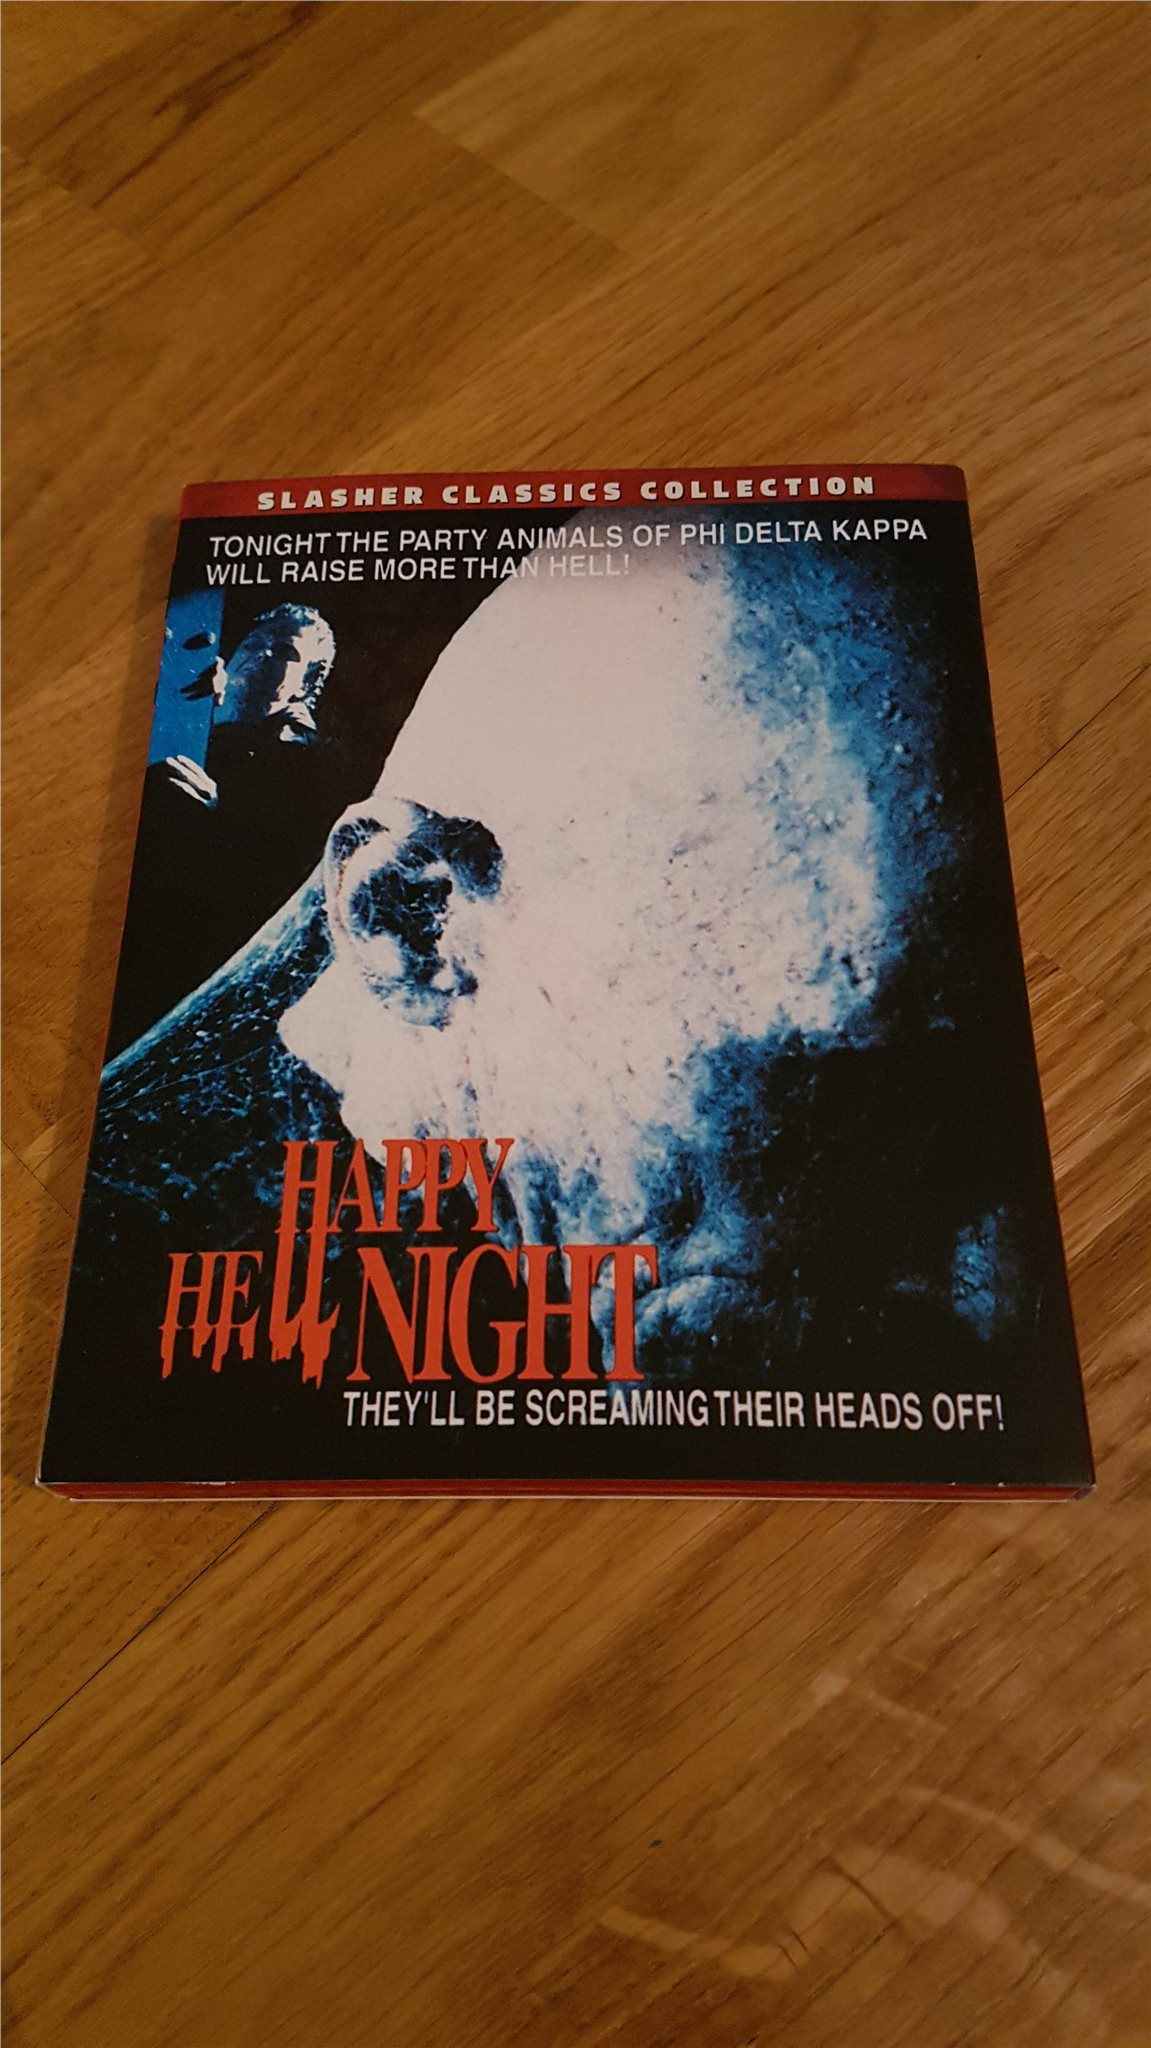 Happy Hell Night Blu-ray - 88 Films